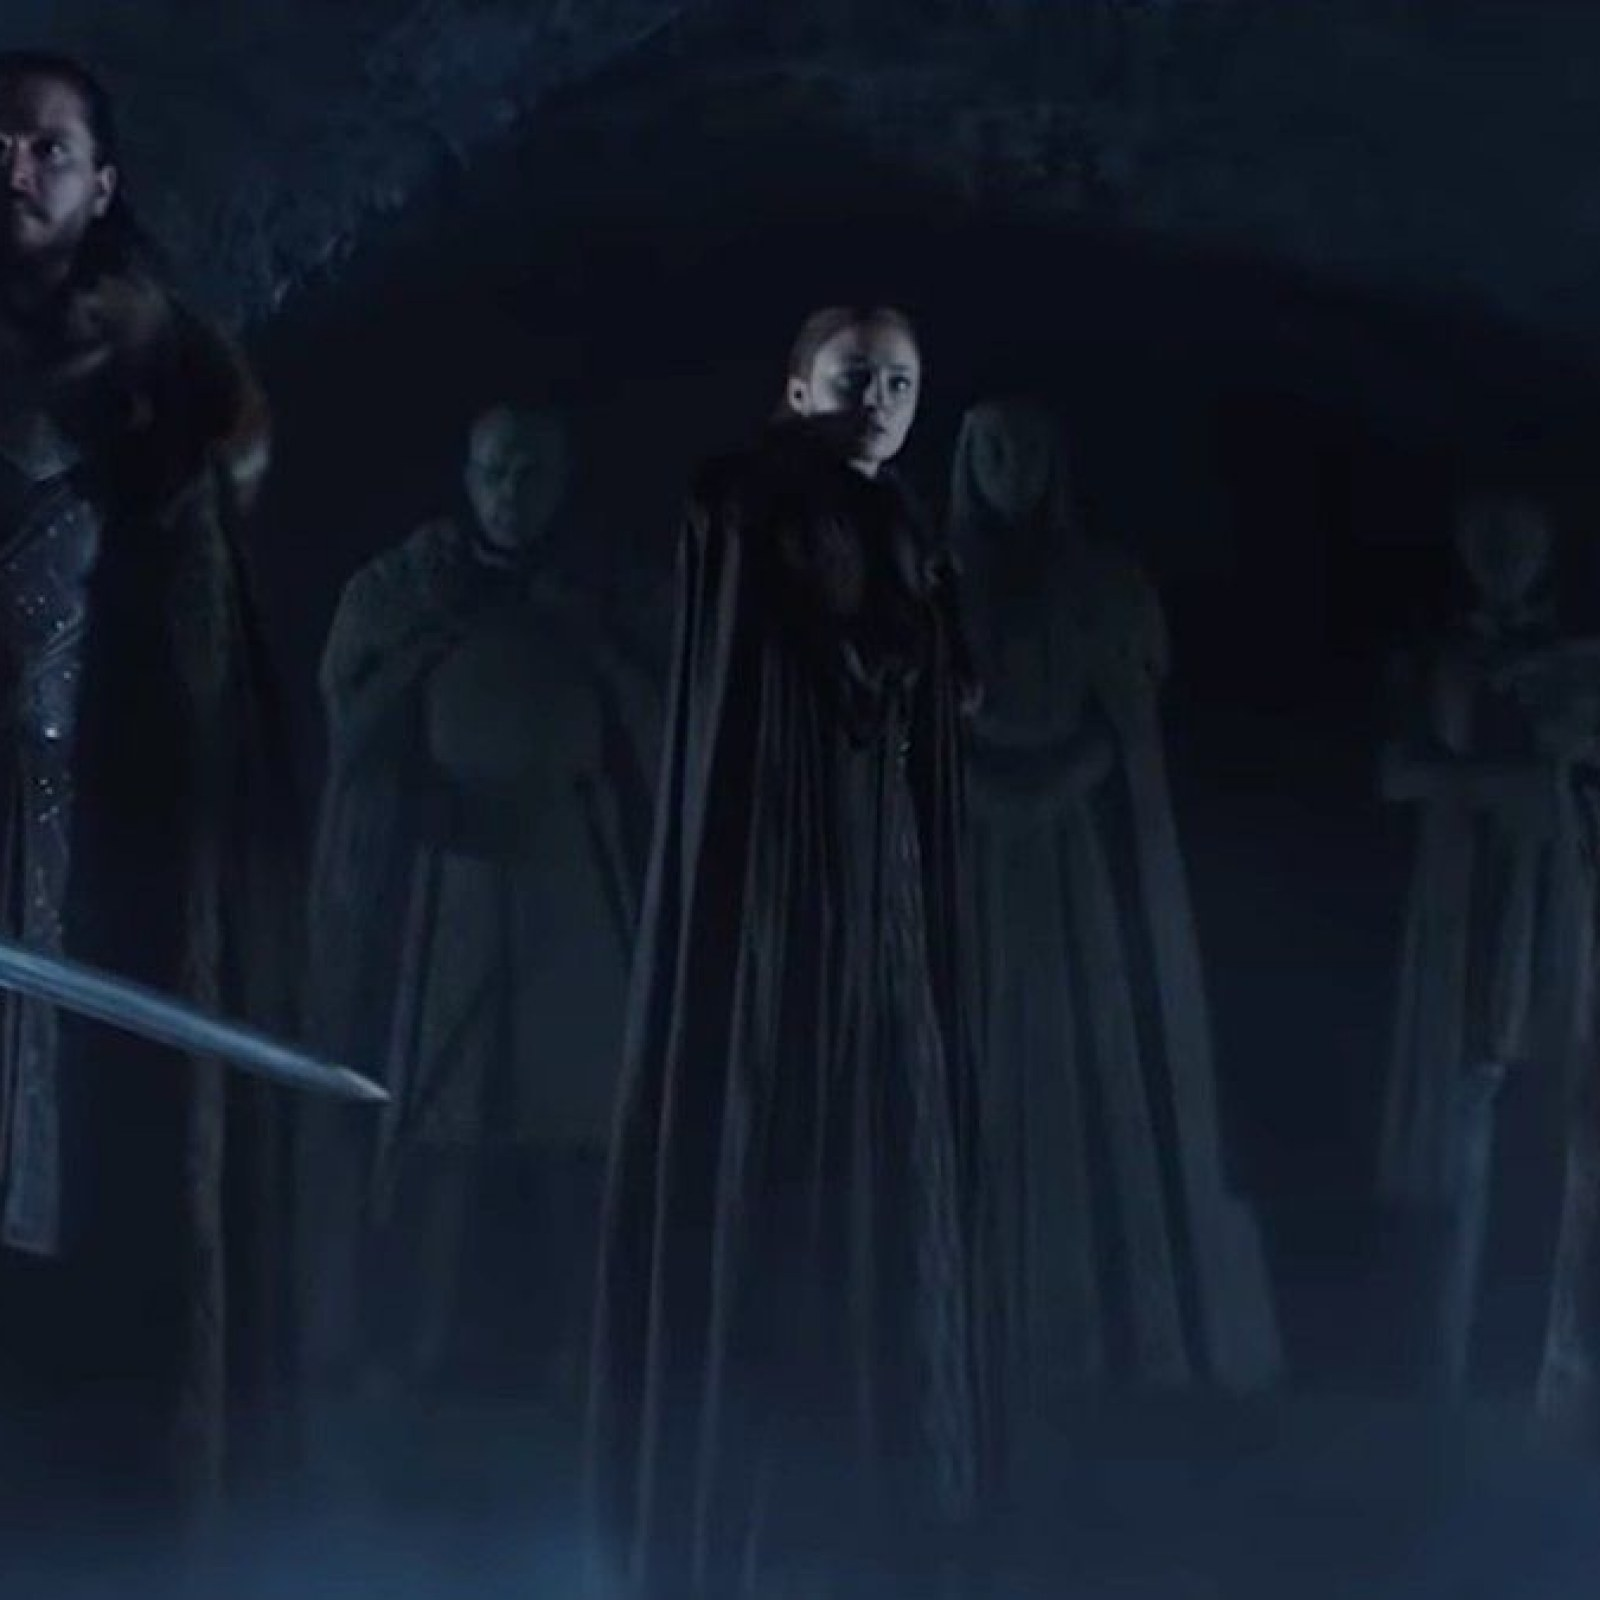 Game of Thrones' Crypts of Winterfell: Which Zombie Starks